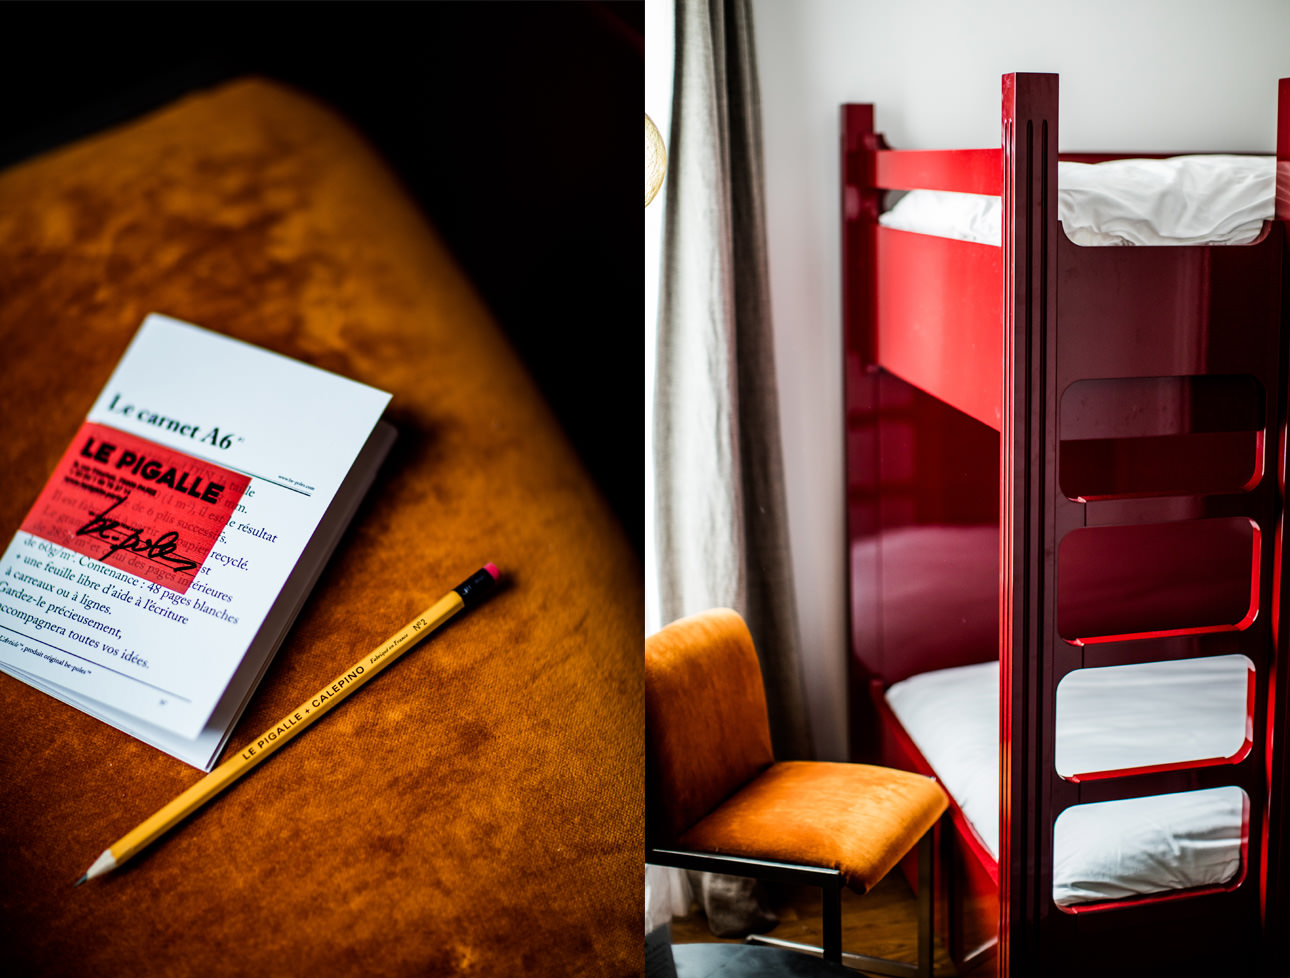 stationery-amenities-hotel-le-pigalle-bunk-beds